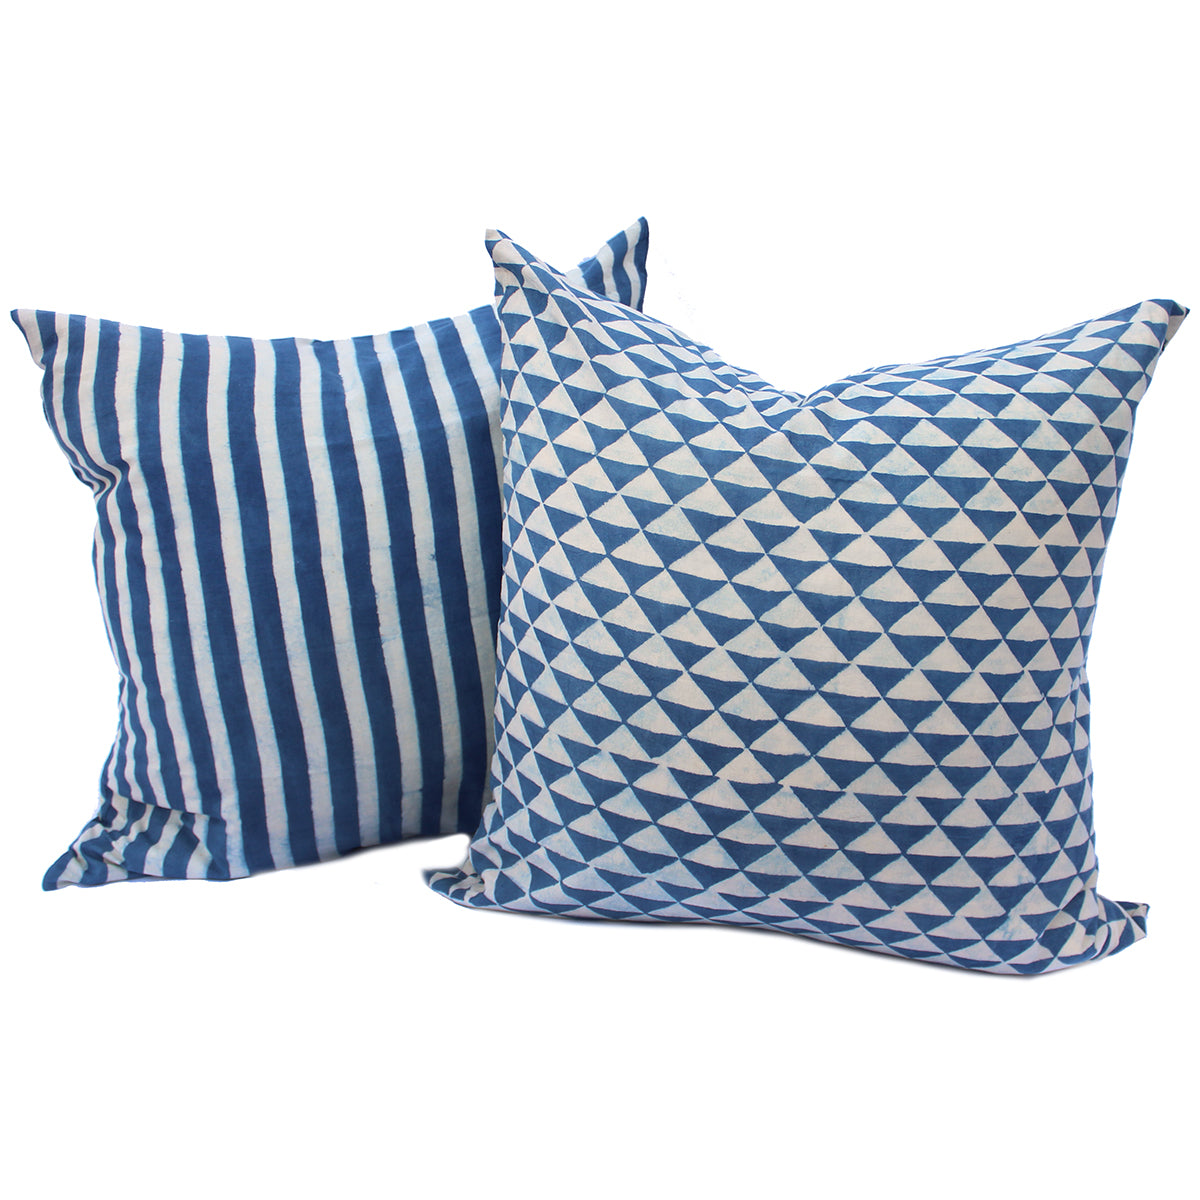 Decorative set of two indigo dyed pillow made using fabric printed by hand and indigo dyed in Kutch, India. One pillow is dyed in deep indigo with white stripes the the second has an indigo dyed geometric design. Both pillows have a cool, nautical feel. Pillow covers are 100% cotton and inserts are natural feathers.